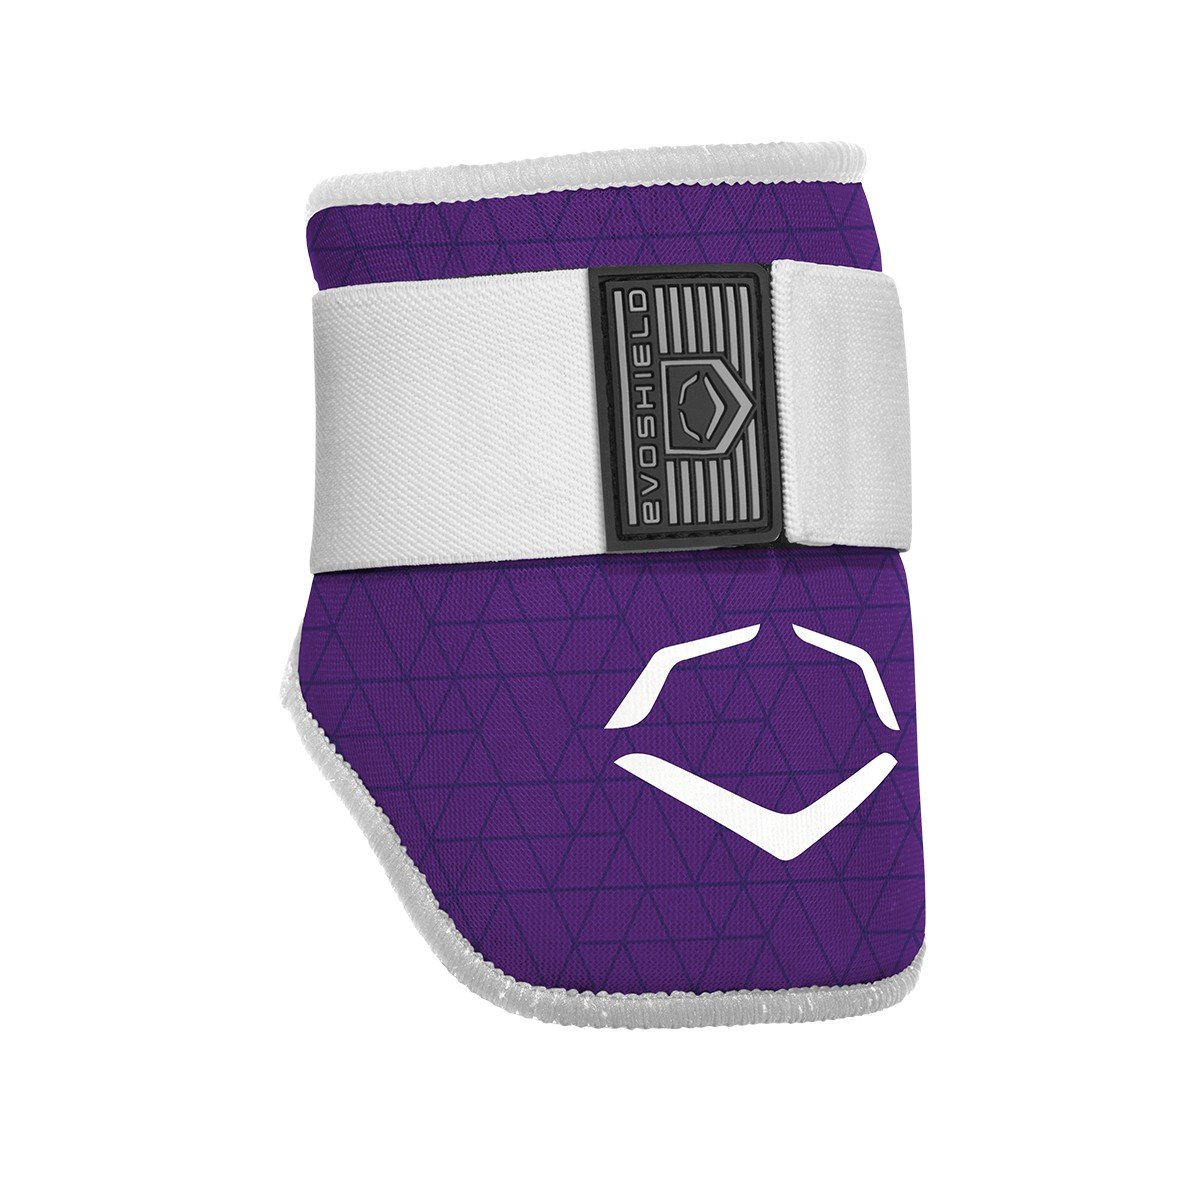 EvoShield EvoCharge Batter's Elbow Guard - Adult, Purple